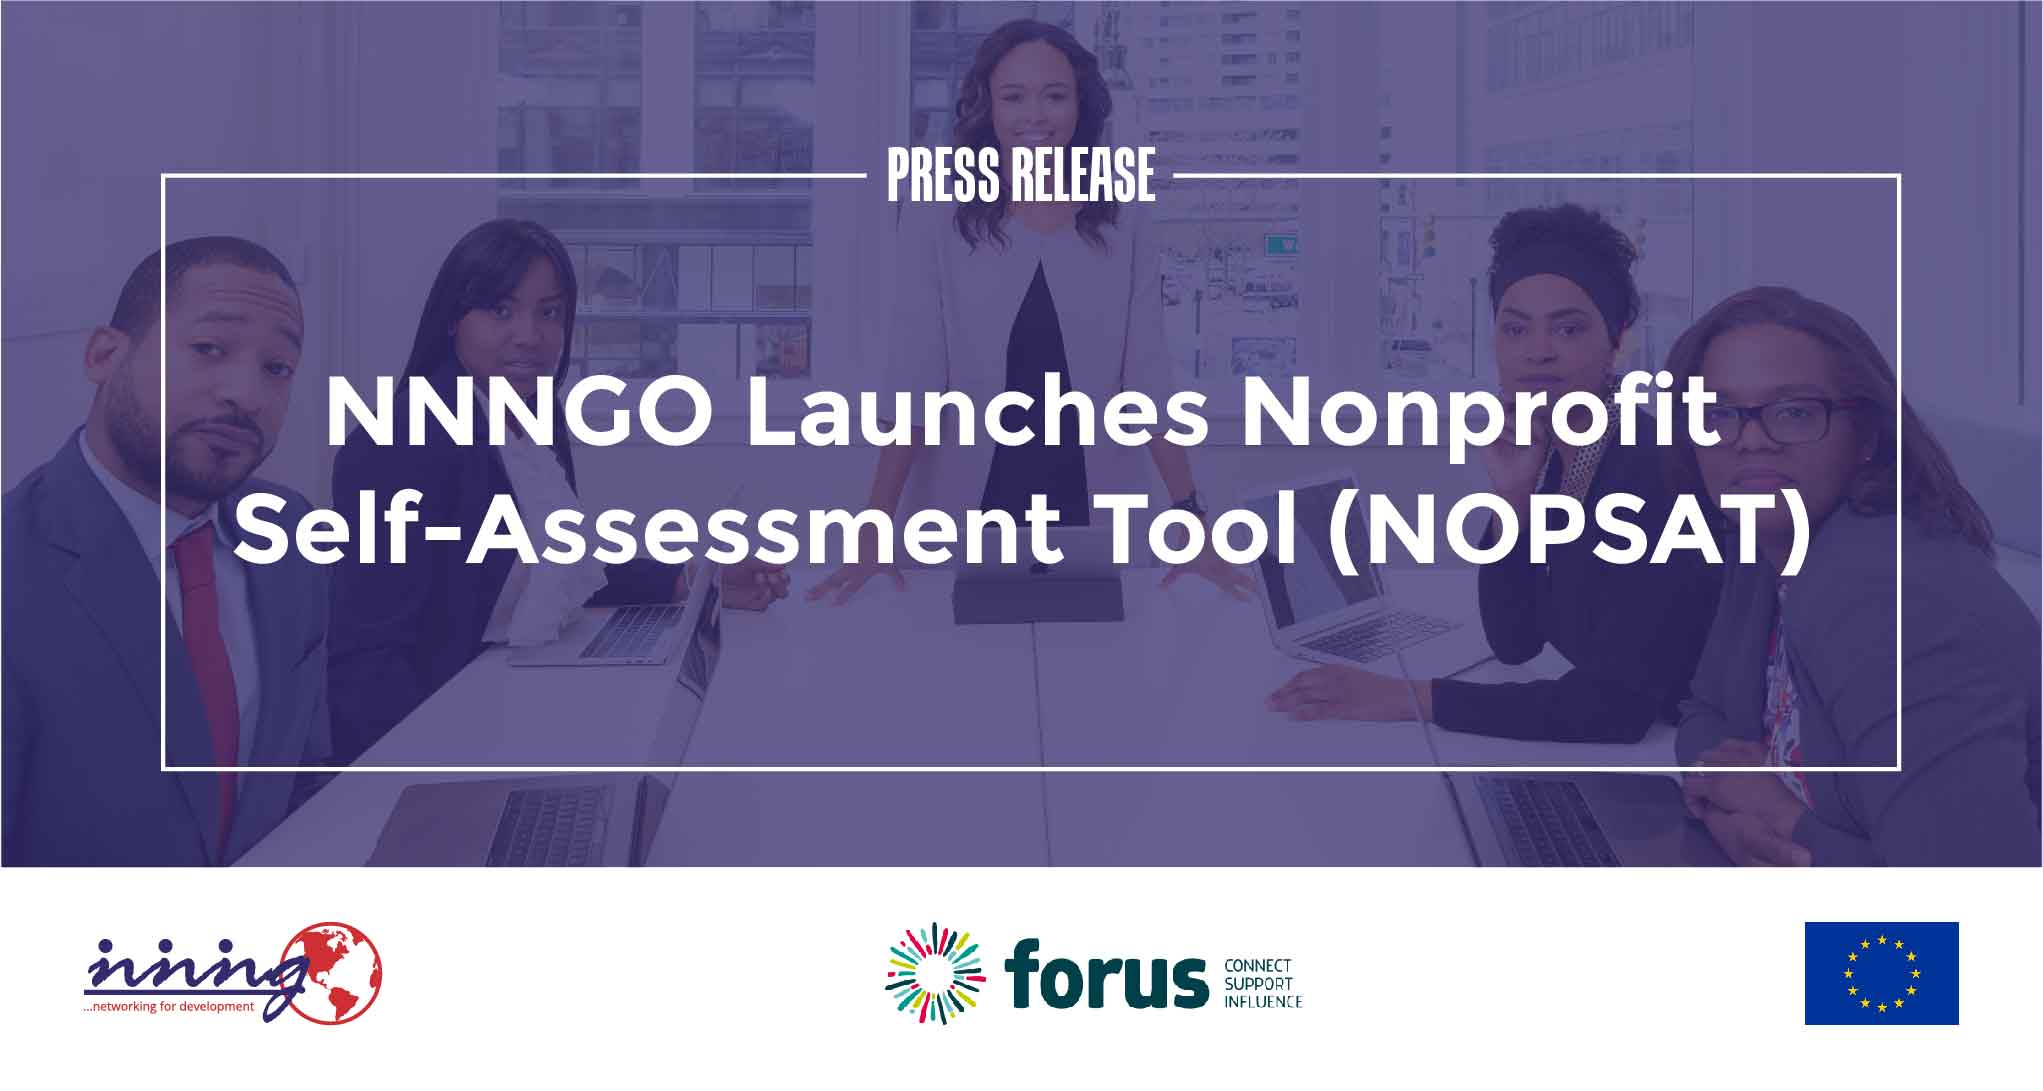 PRESS RELEASE – NNNGO Launches Nonprofit Self-Assessment Tool (NOPSAT)